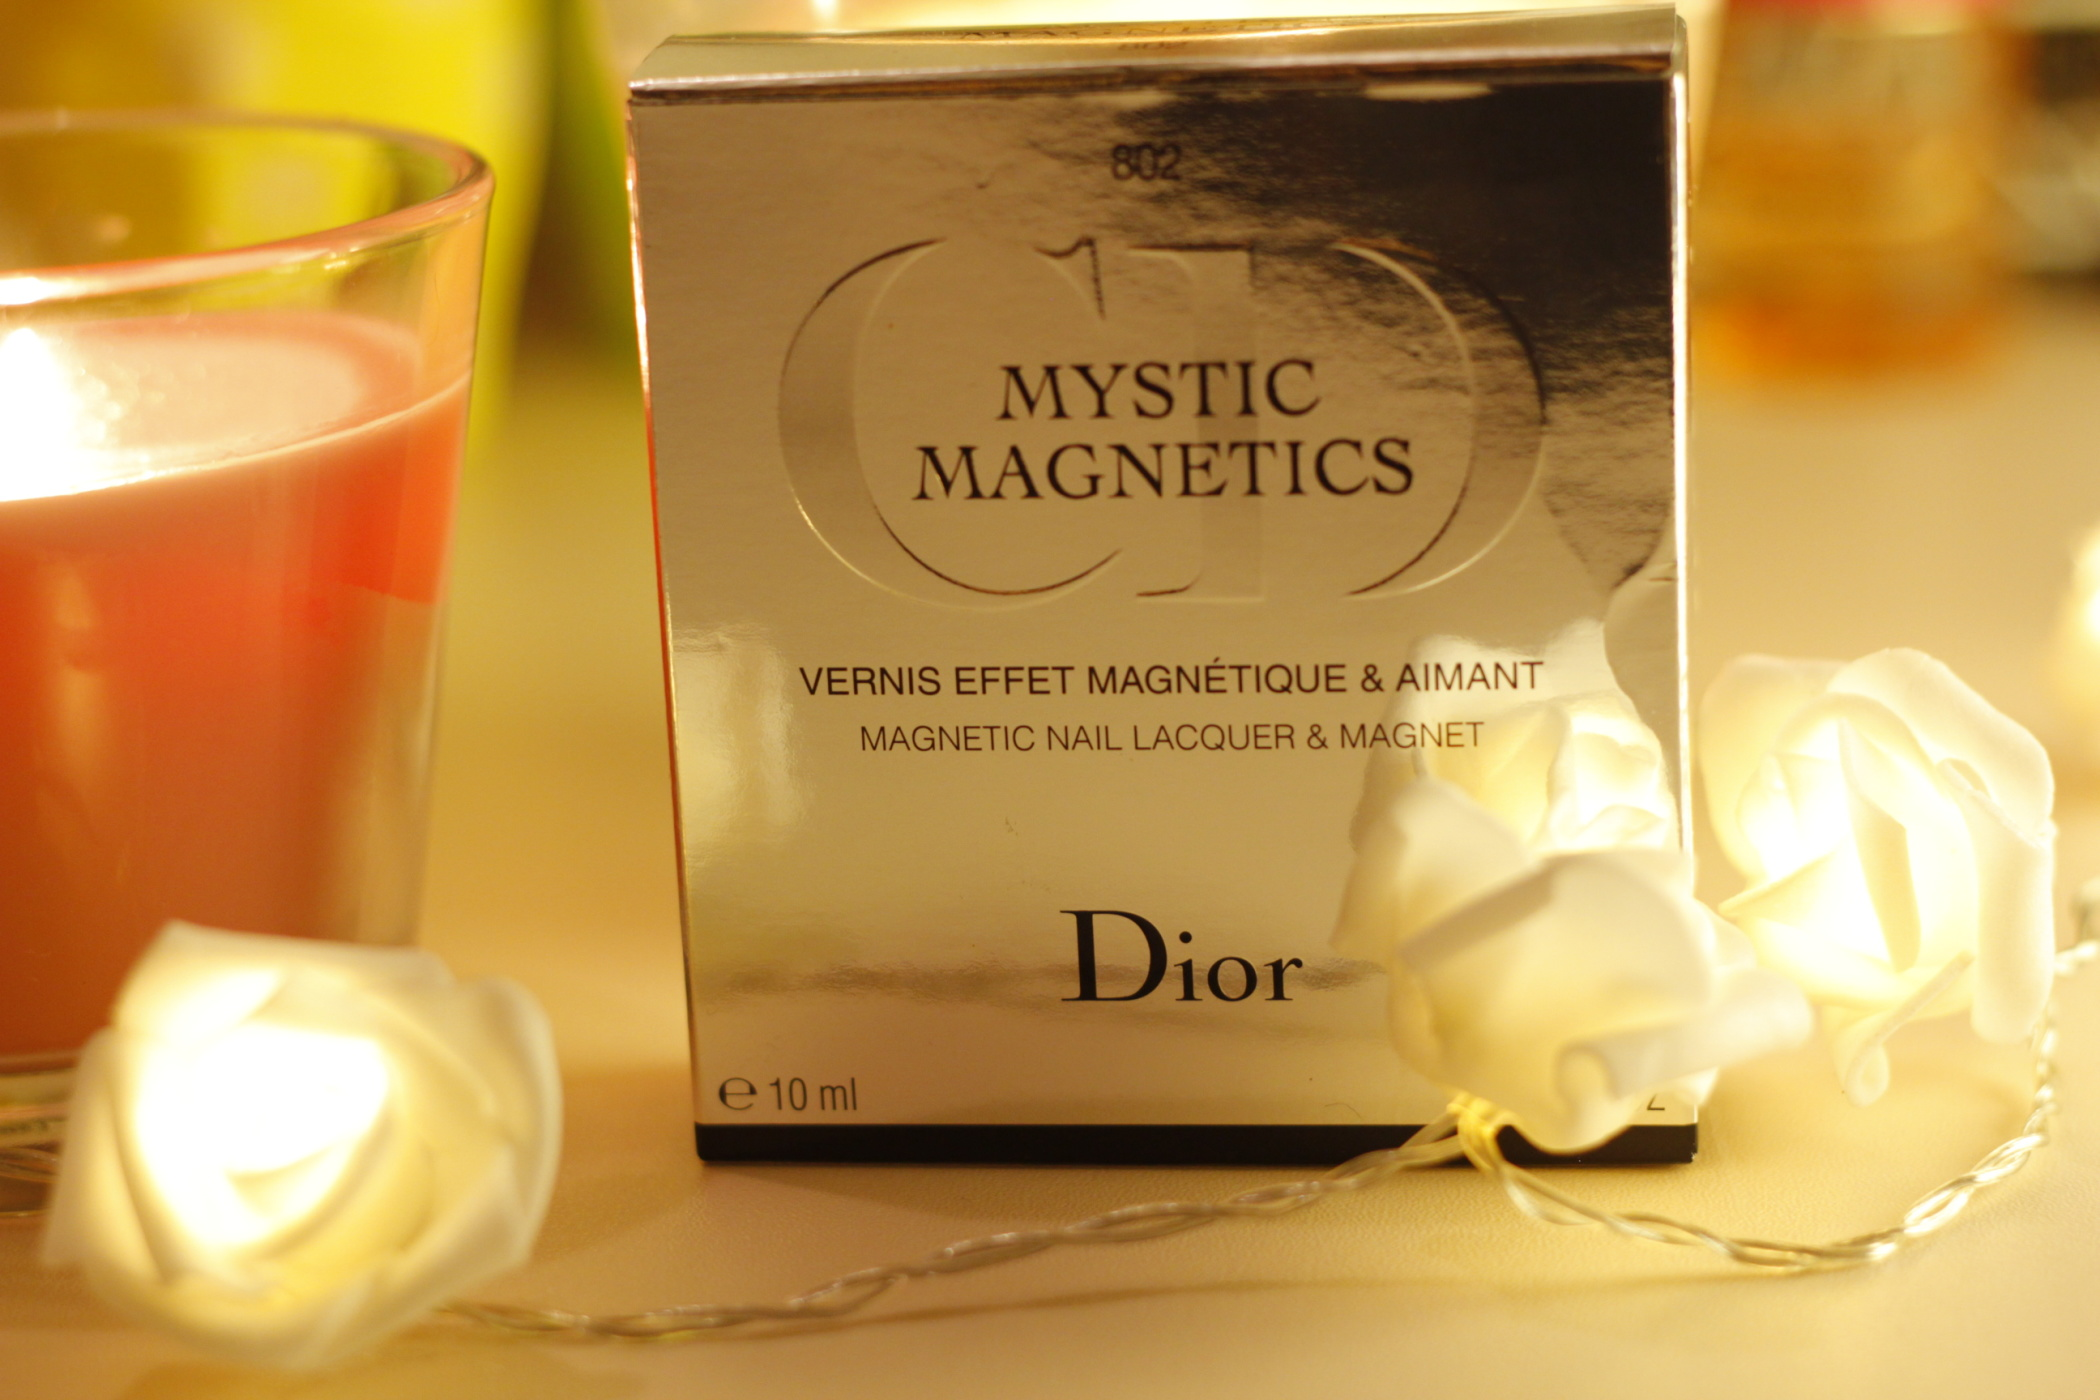 Mystic Magnetics by Dior